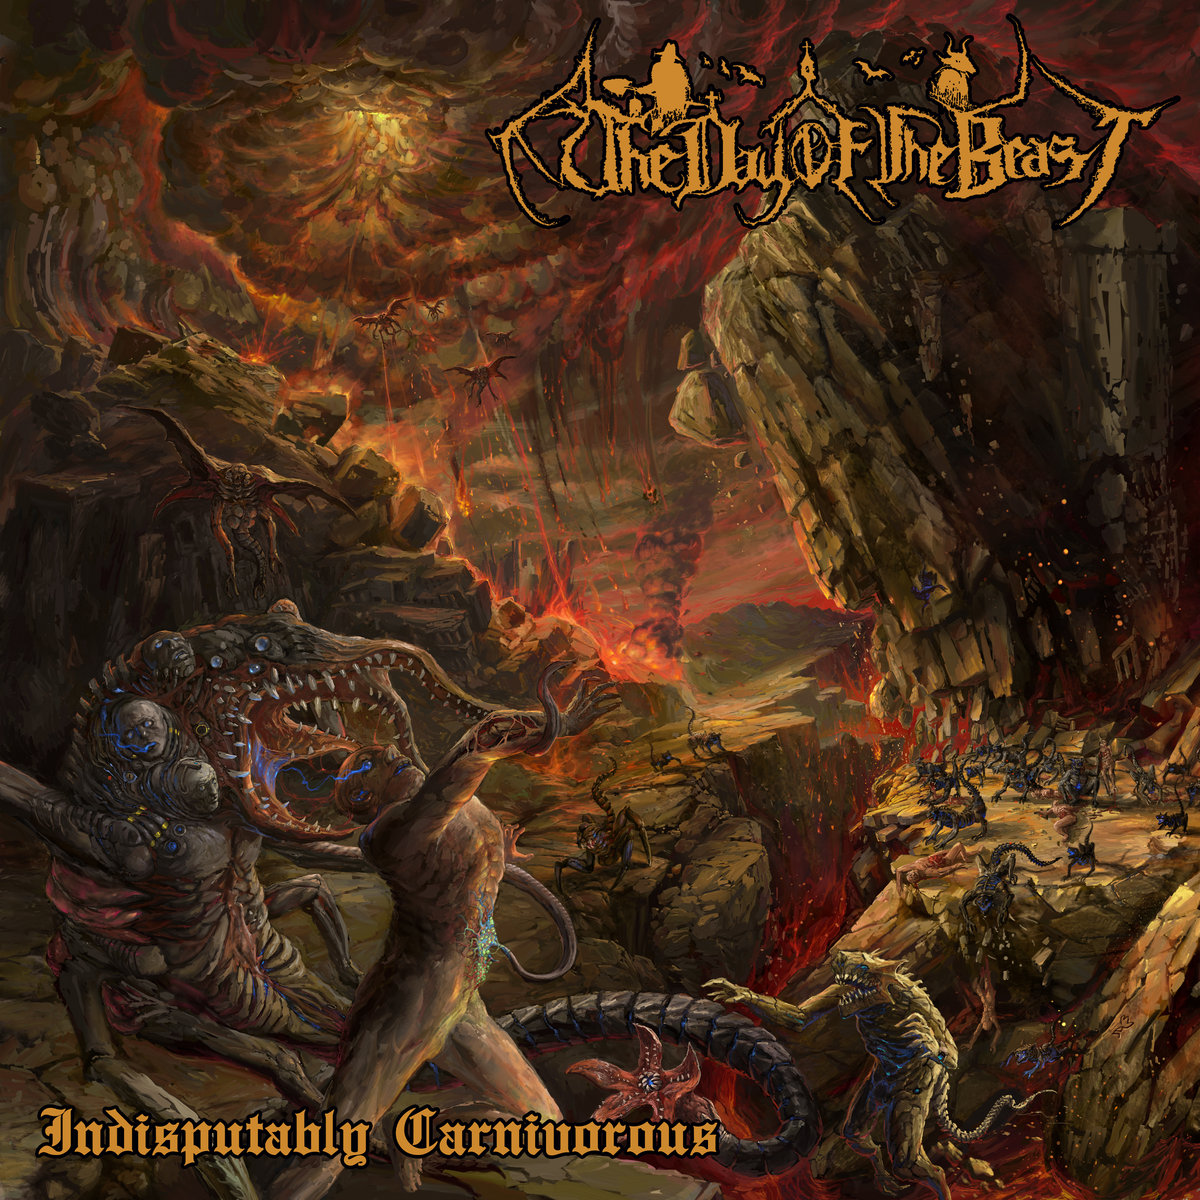 The Day Of The Beast Indisputably Carnivorous Album Cover Artwork